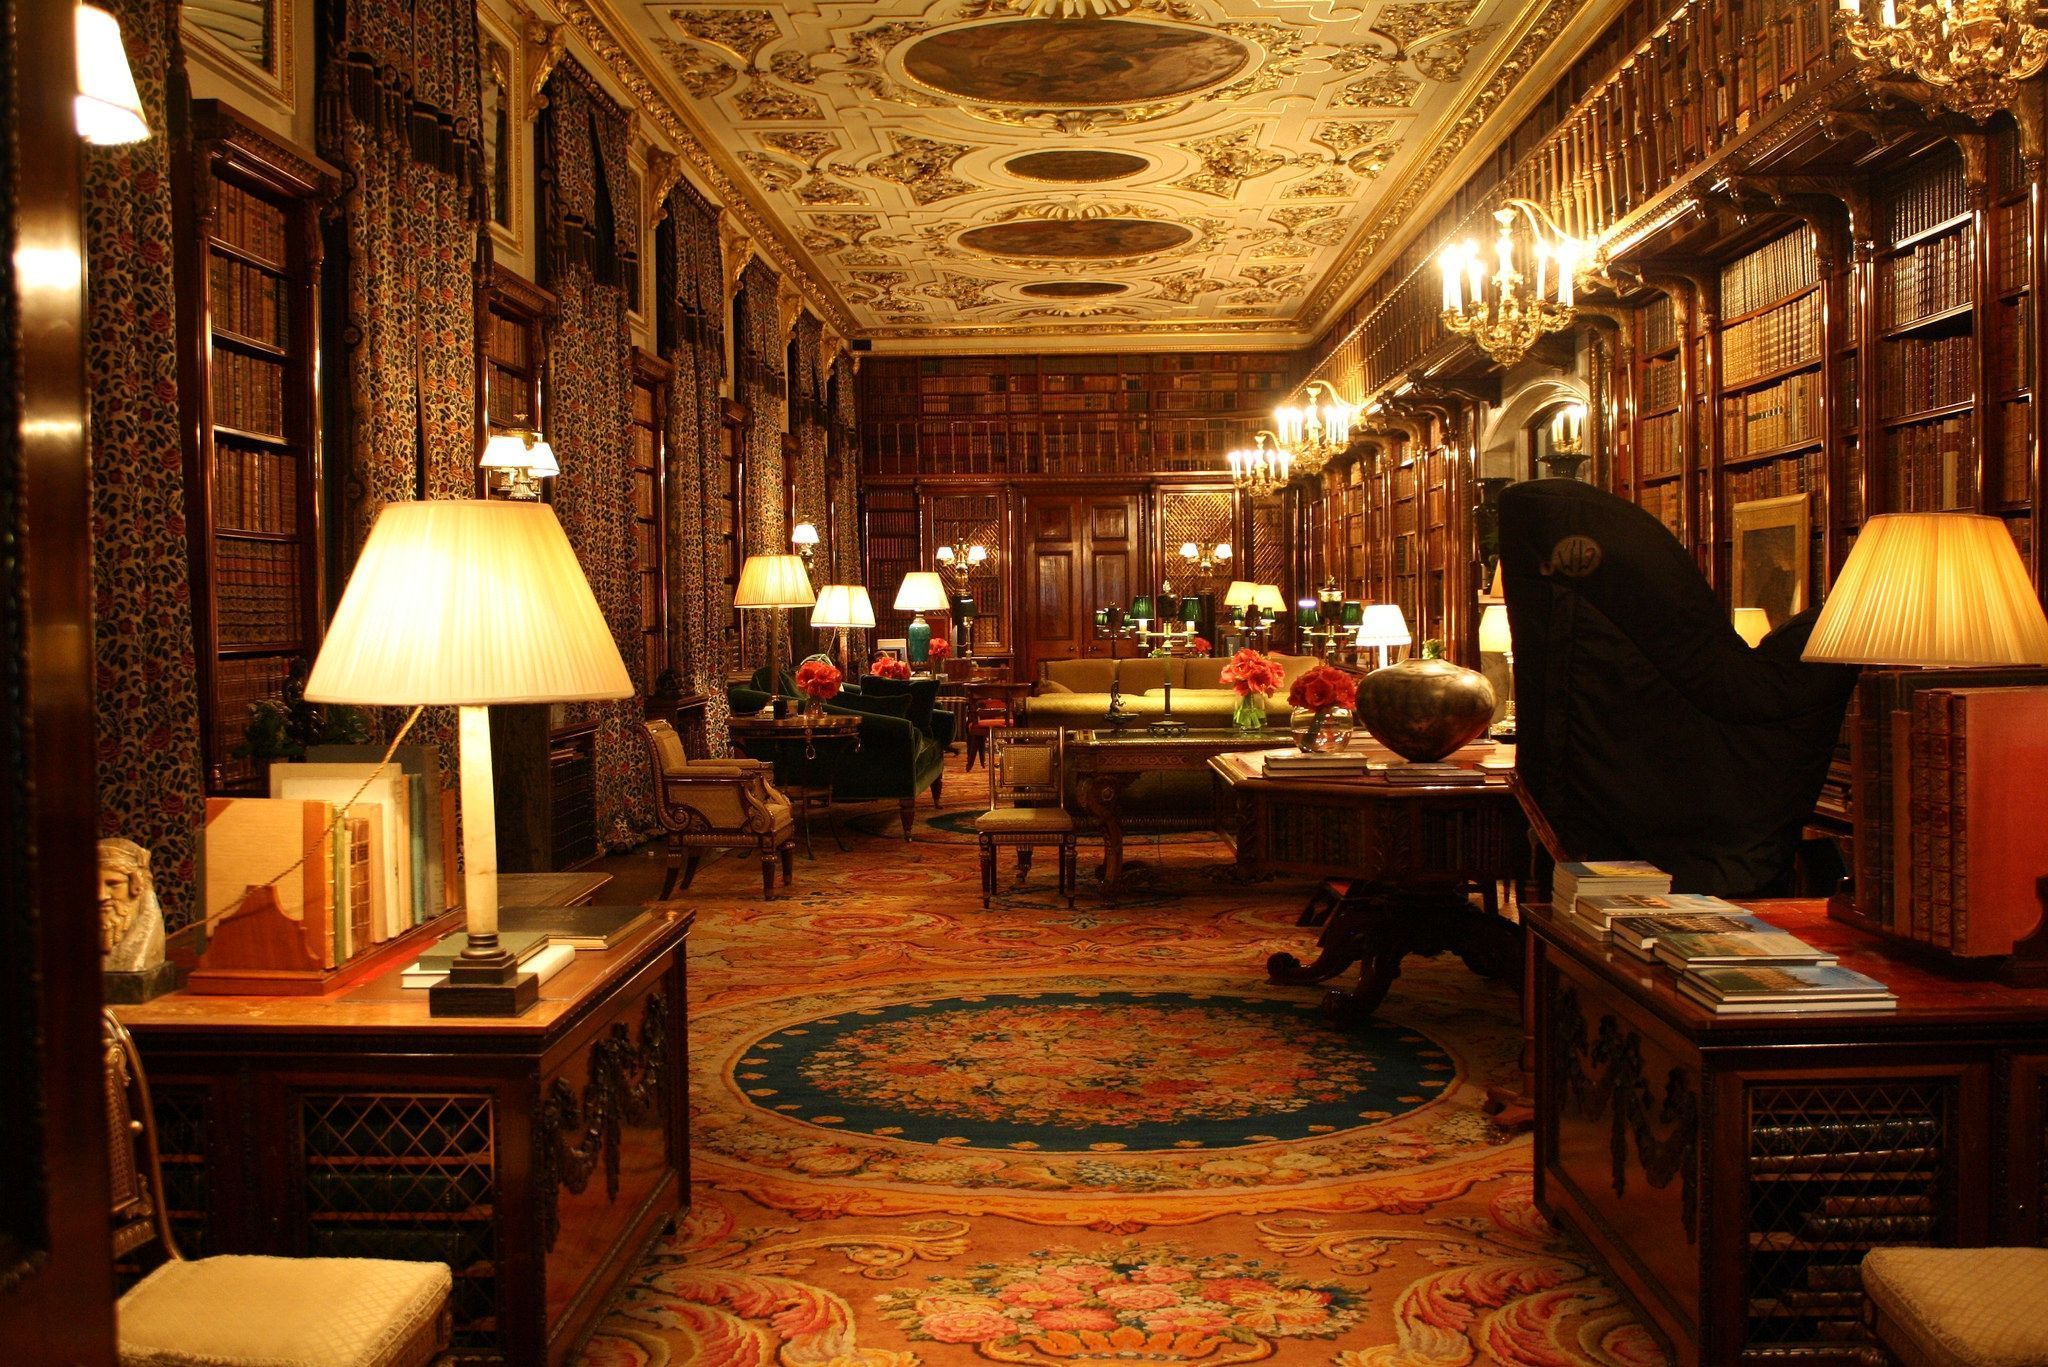 Chatsworth_House_library